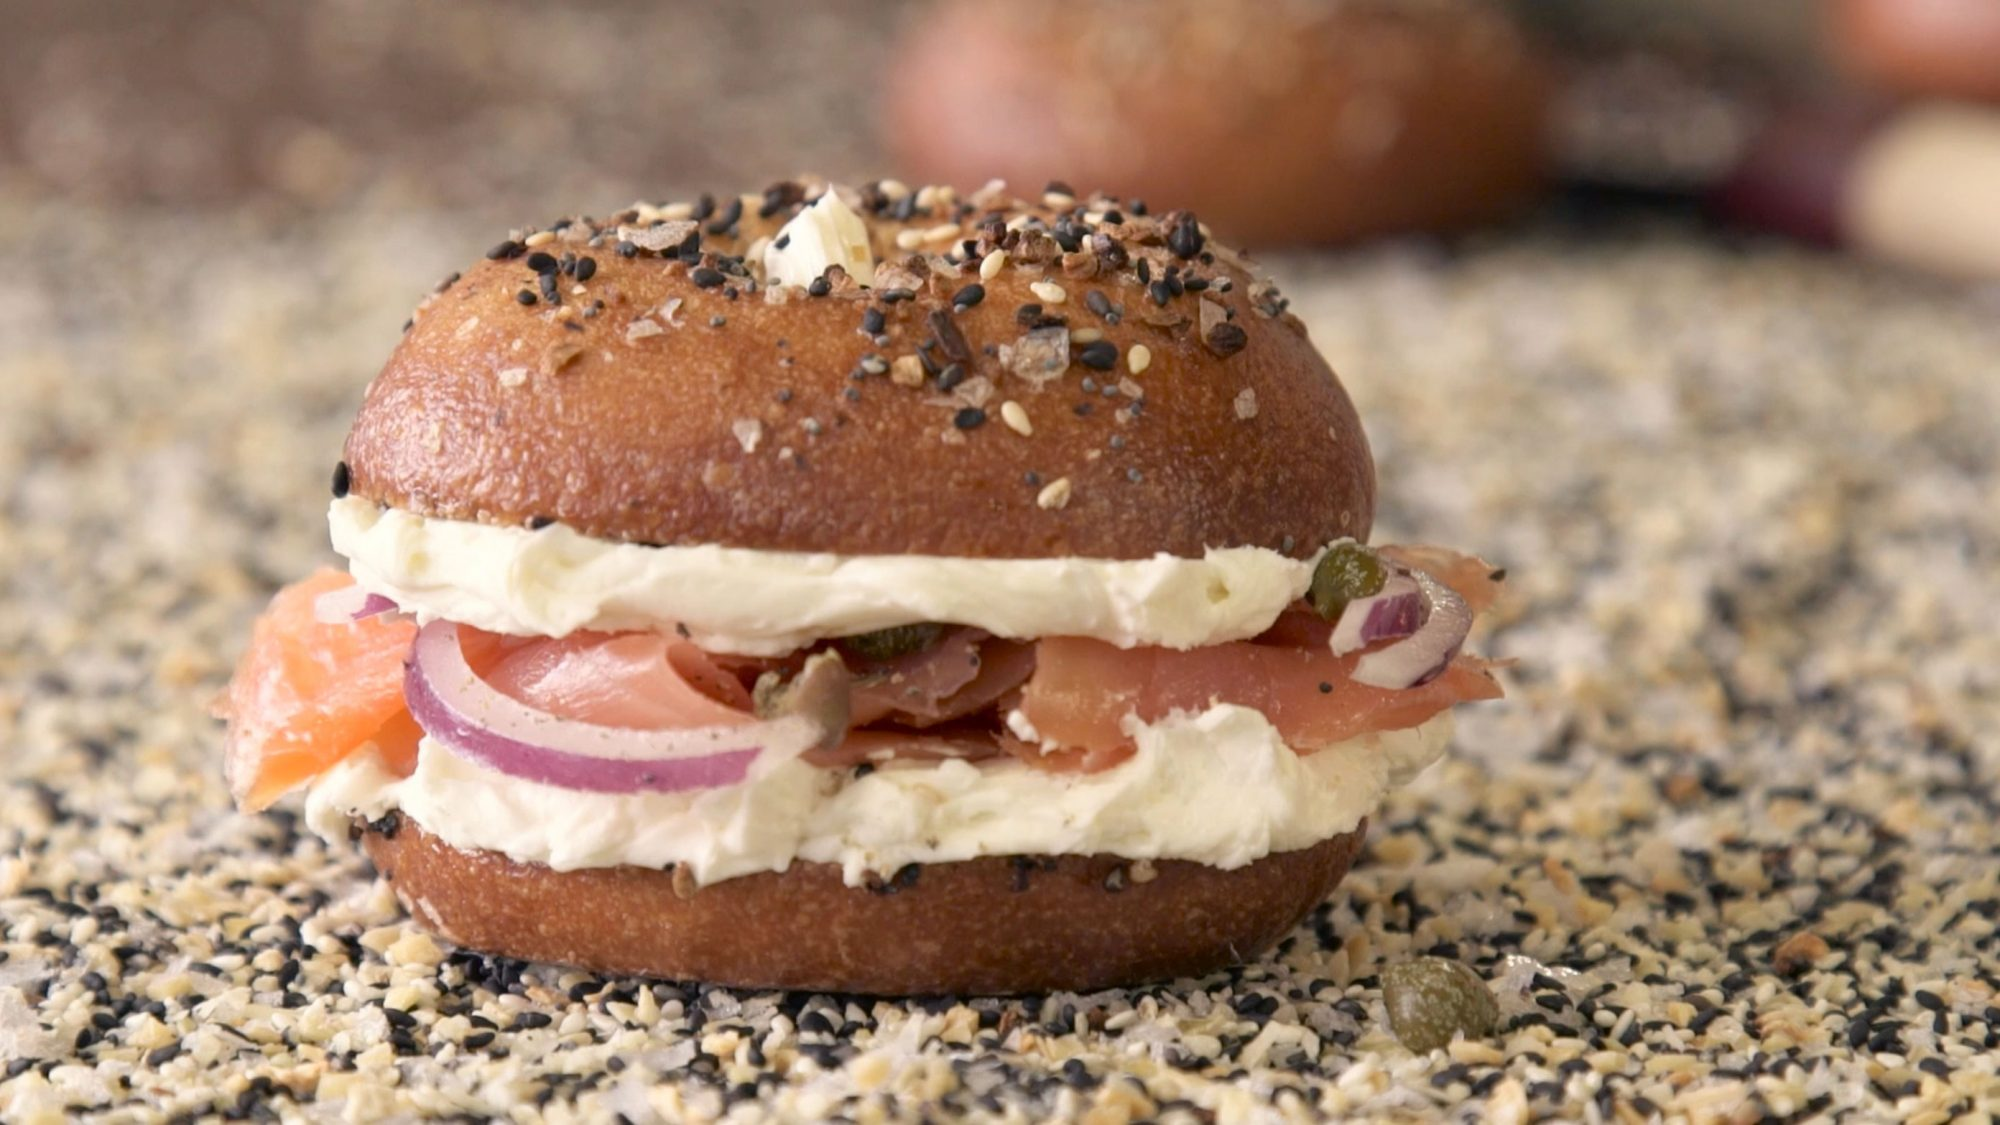 Video: How to Make Amazing Everything Bagels at Home